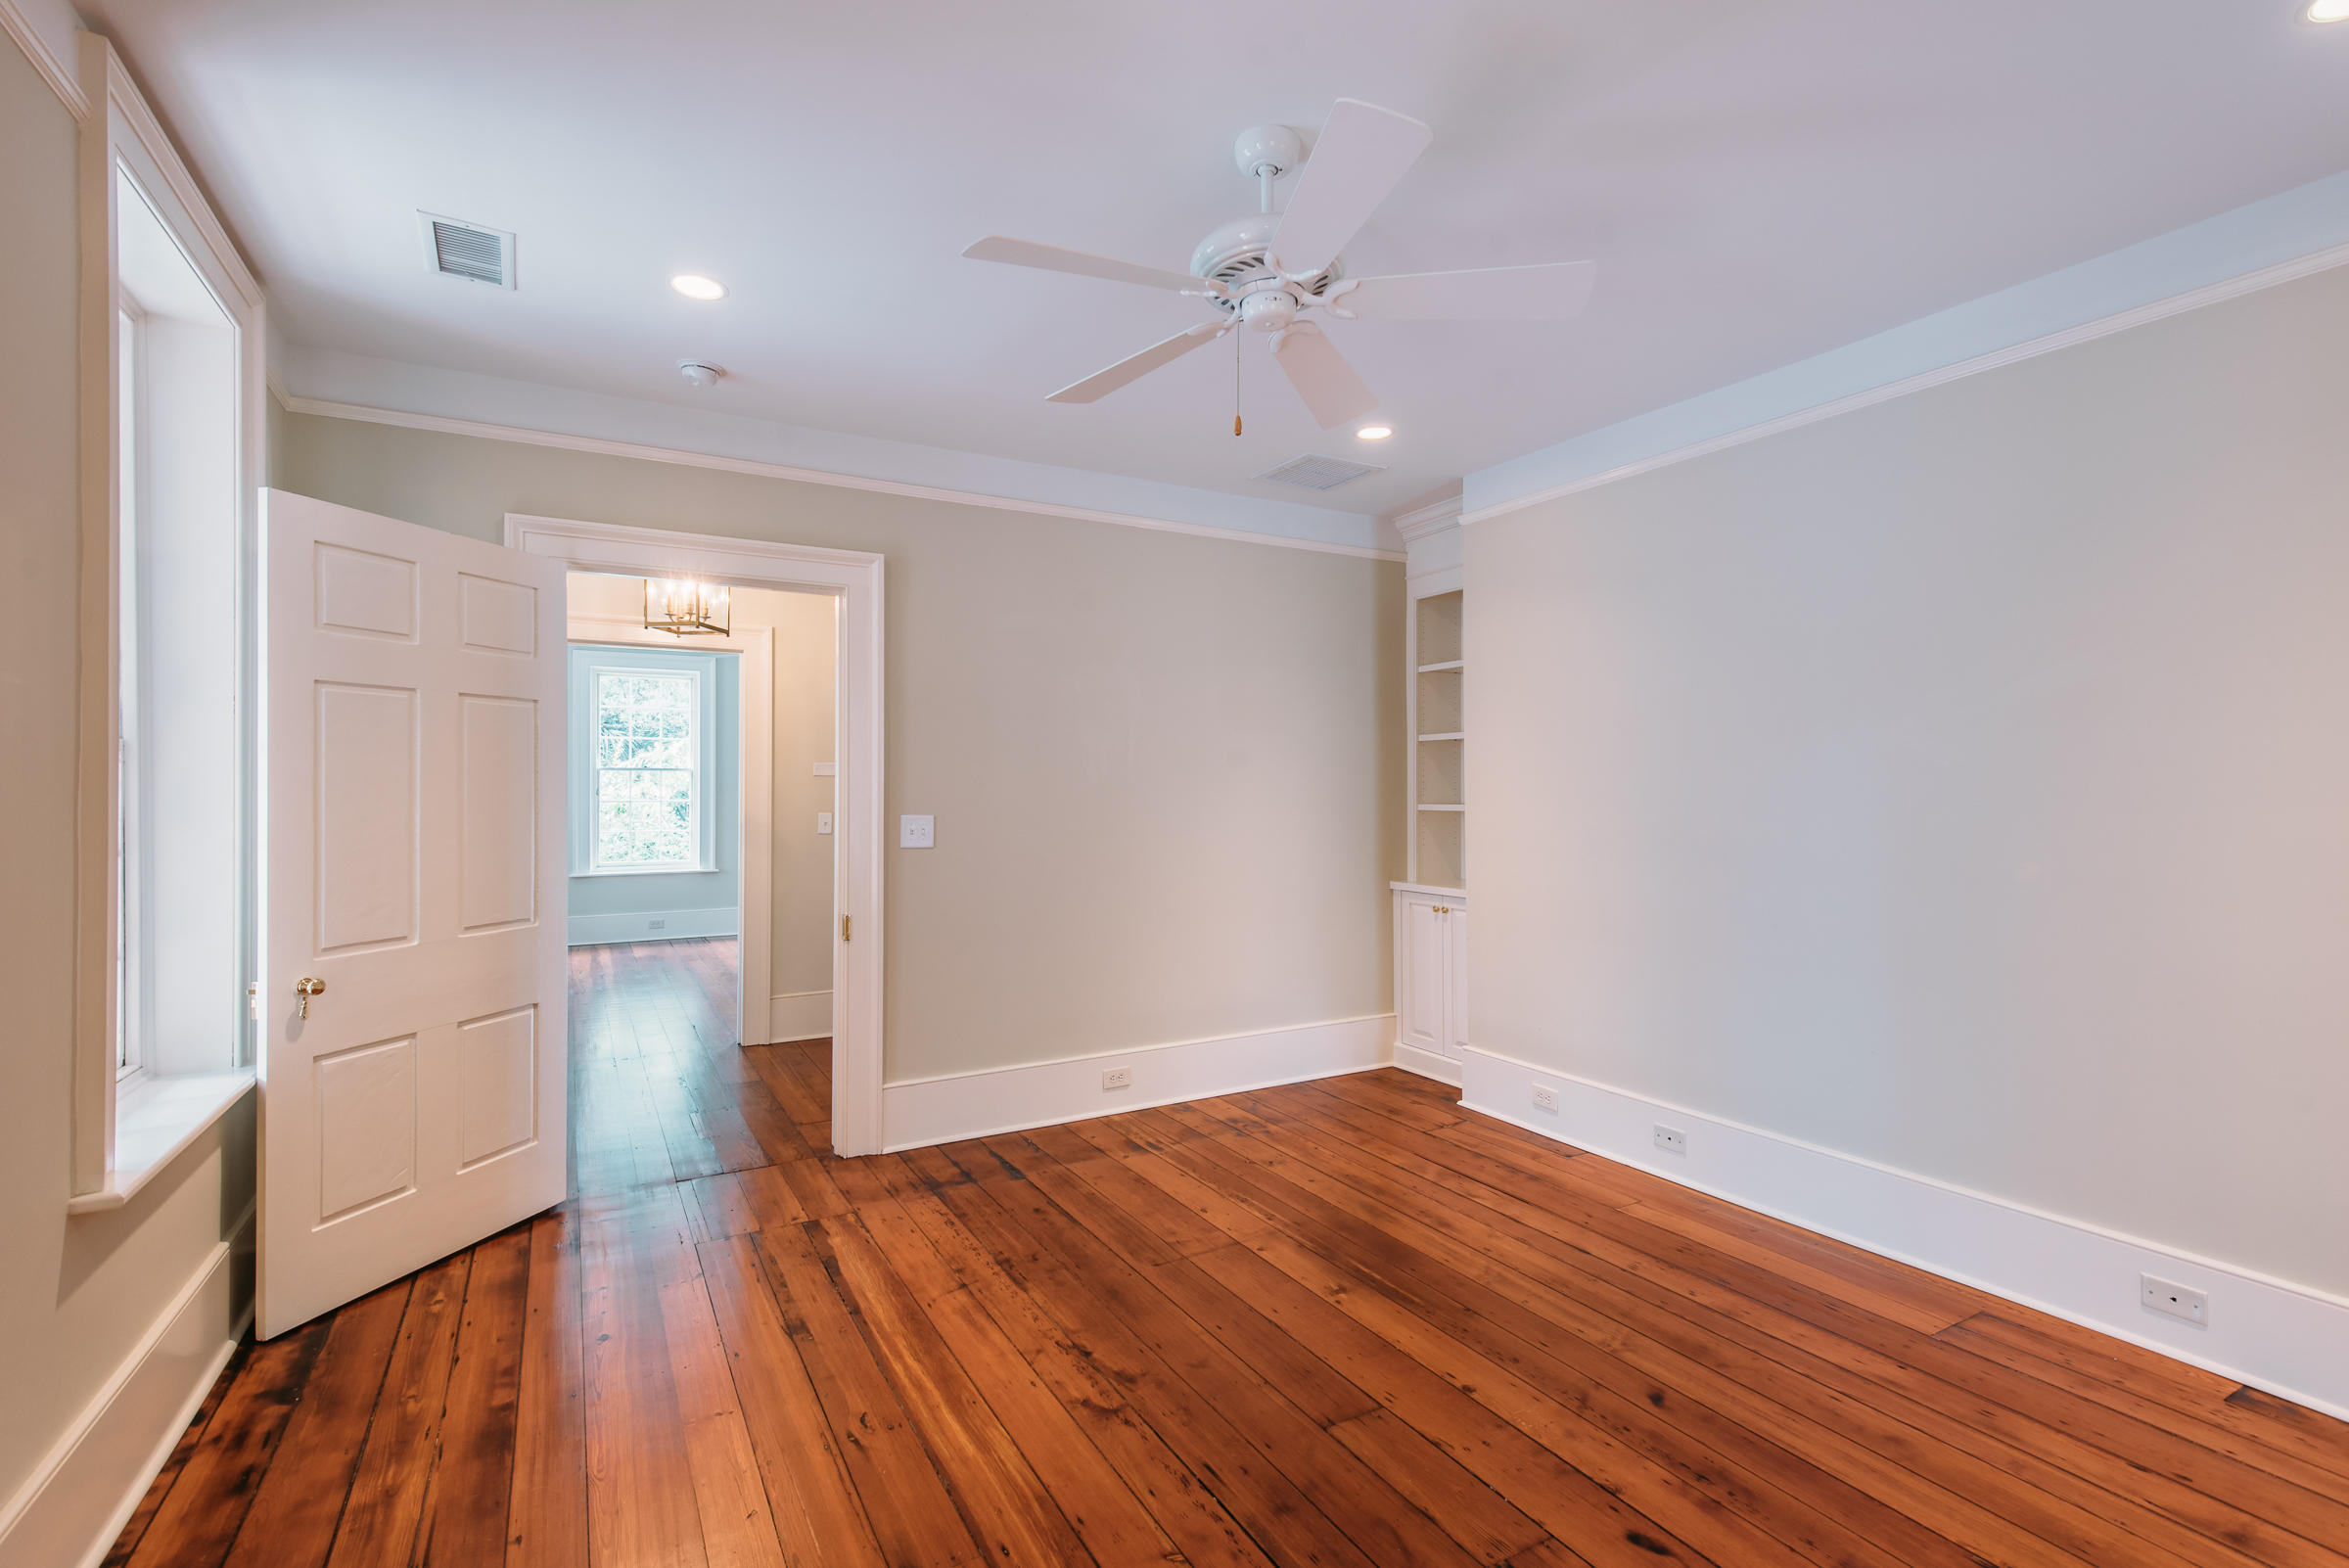 Photo of 39 Society St, Charleston, SC 29401